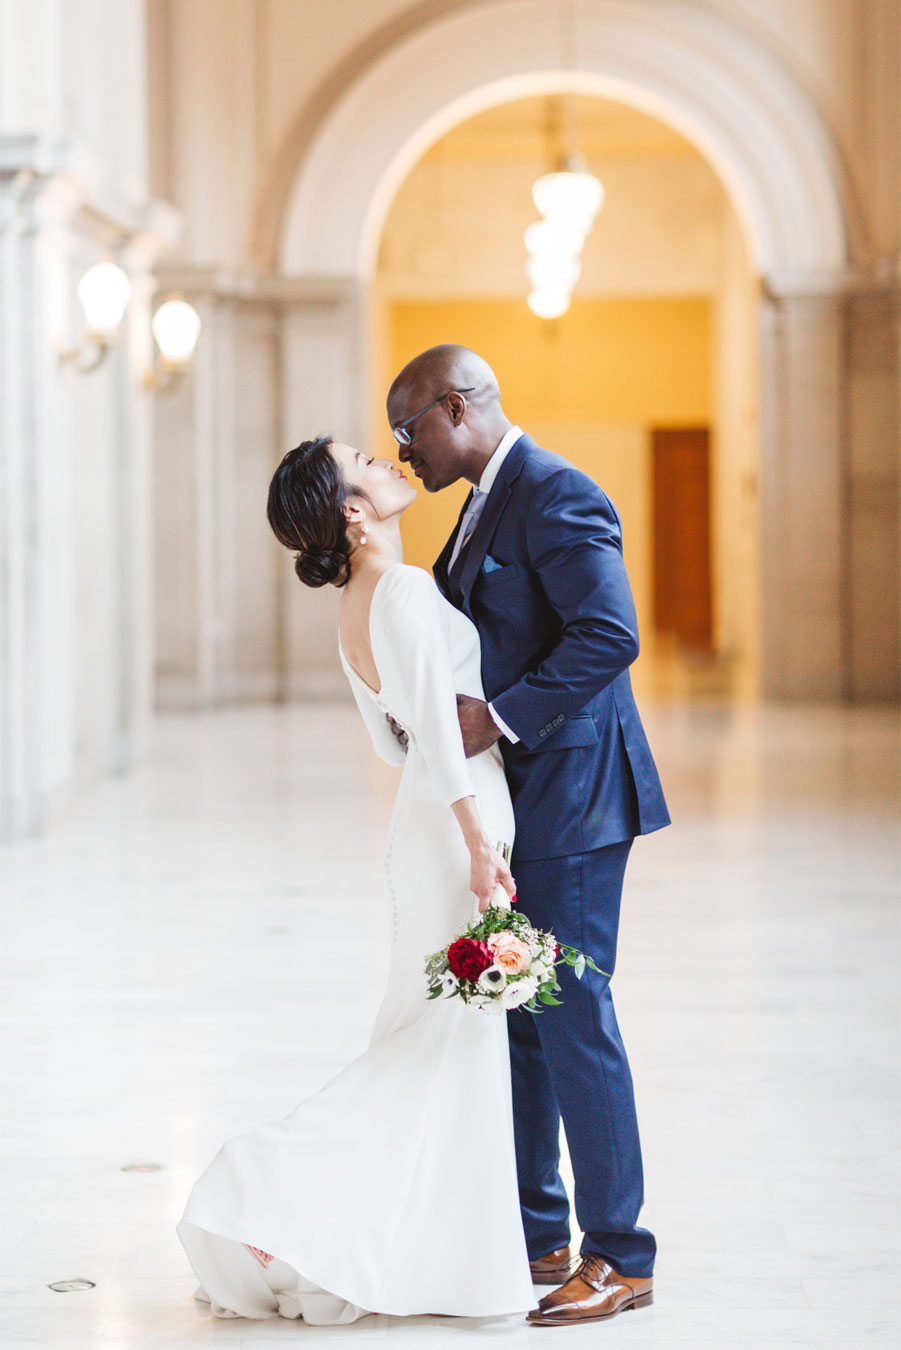 creative modern san francisco city hall wedding photography for hip couples